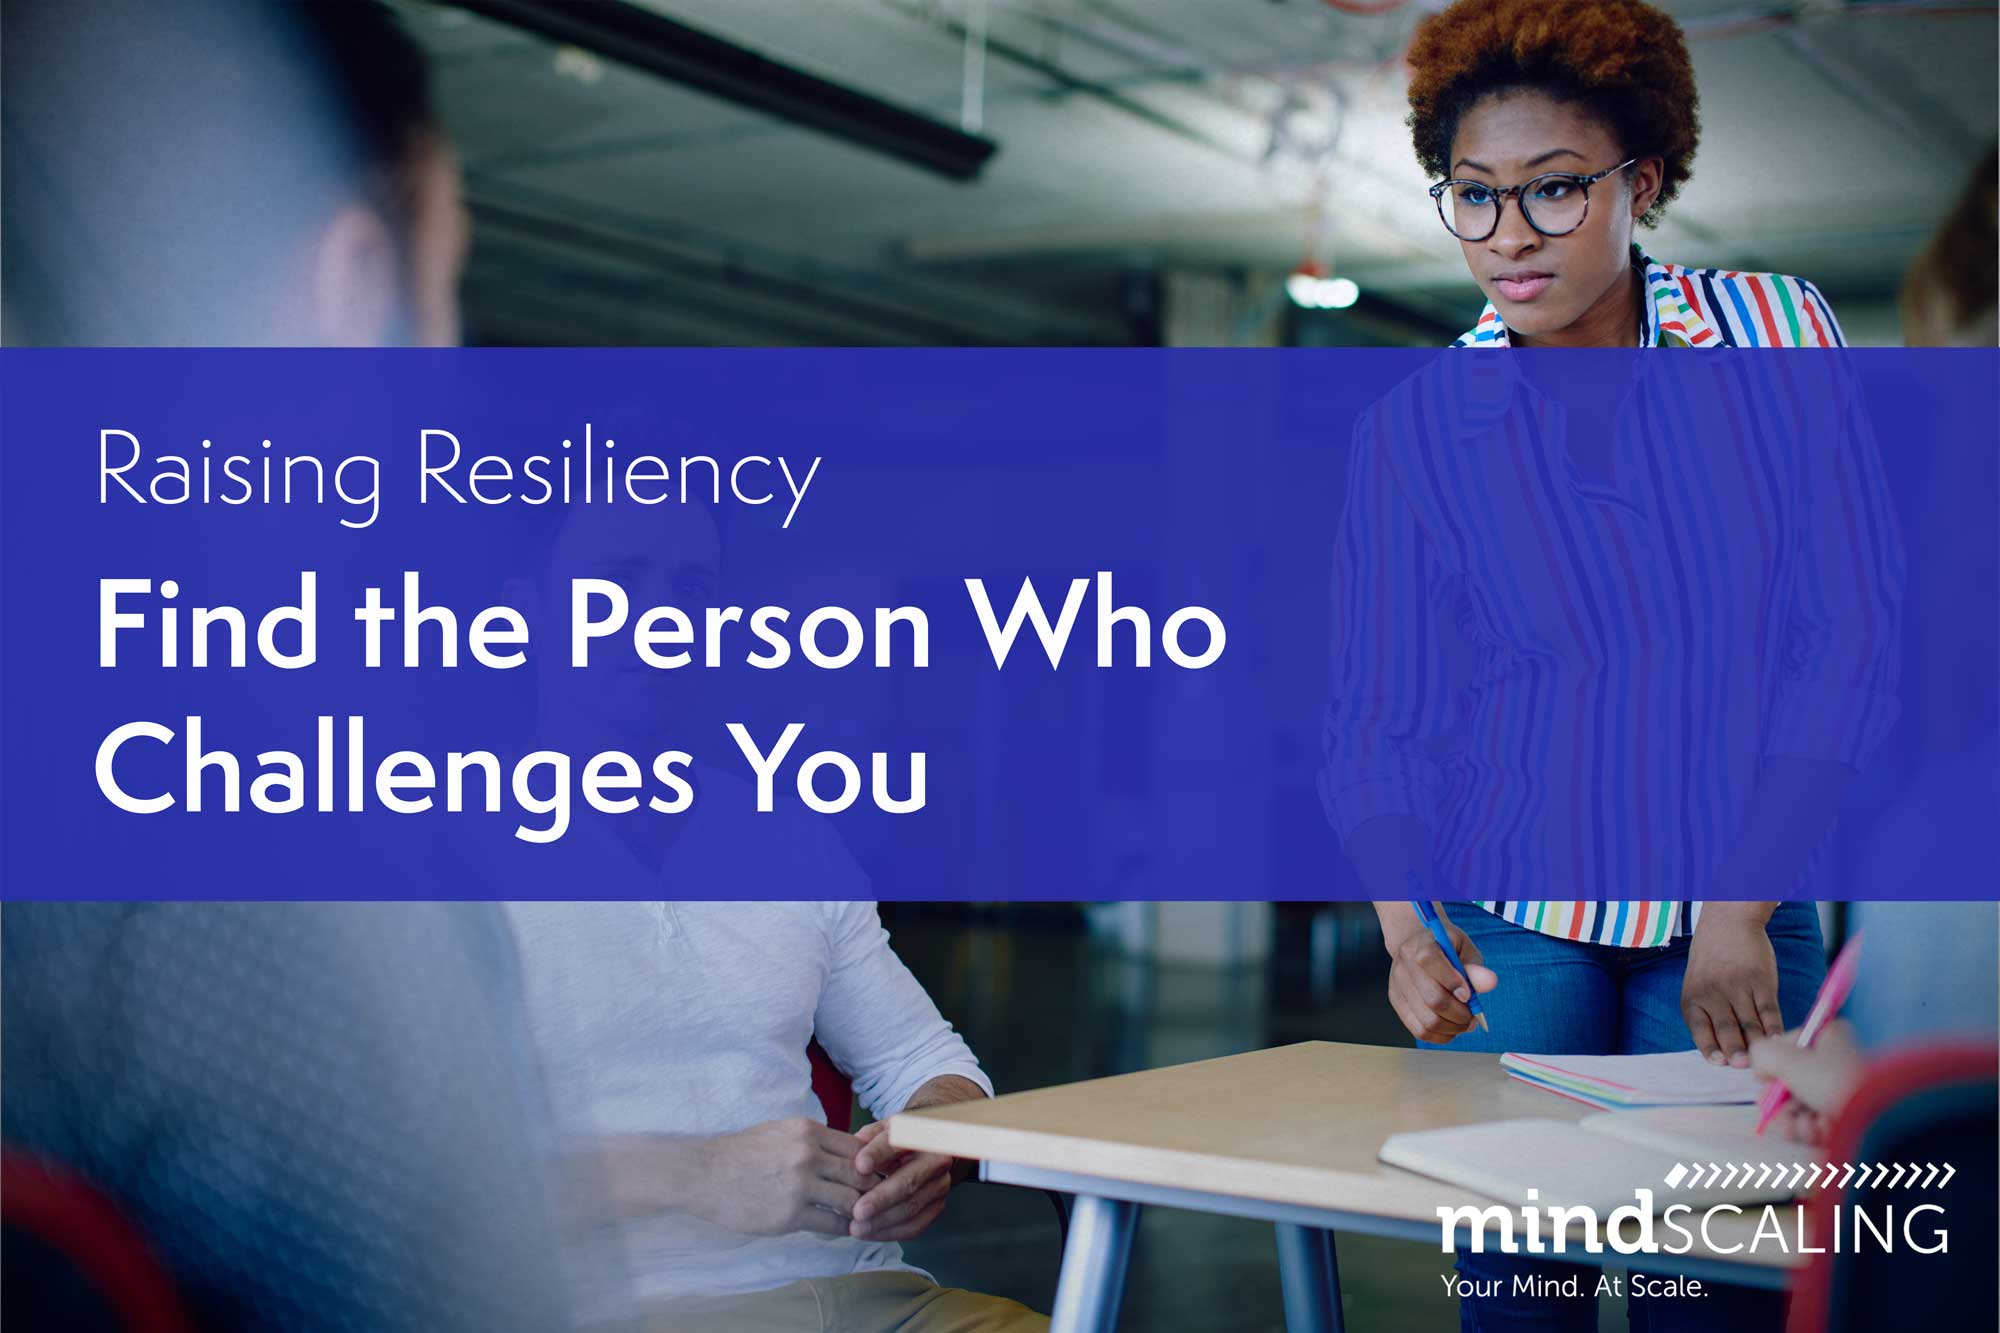 Raising Resiliency - Find the Person Who Challenges You